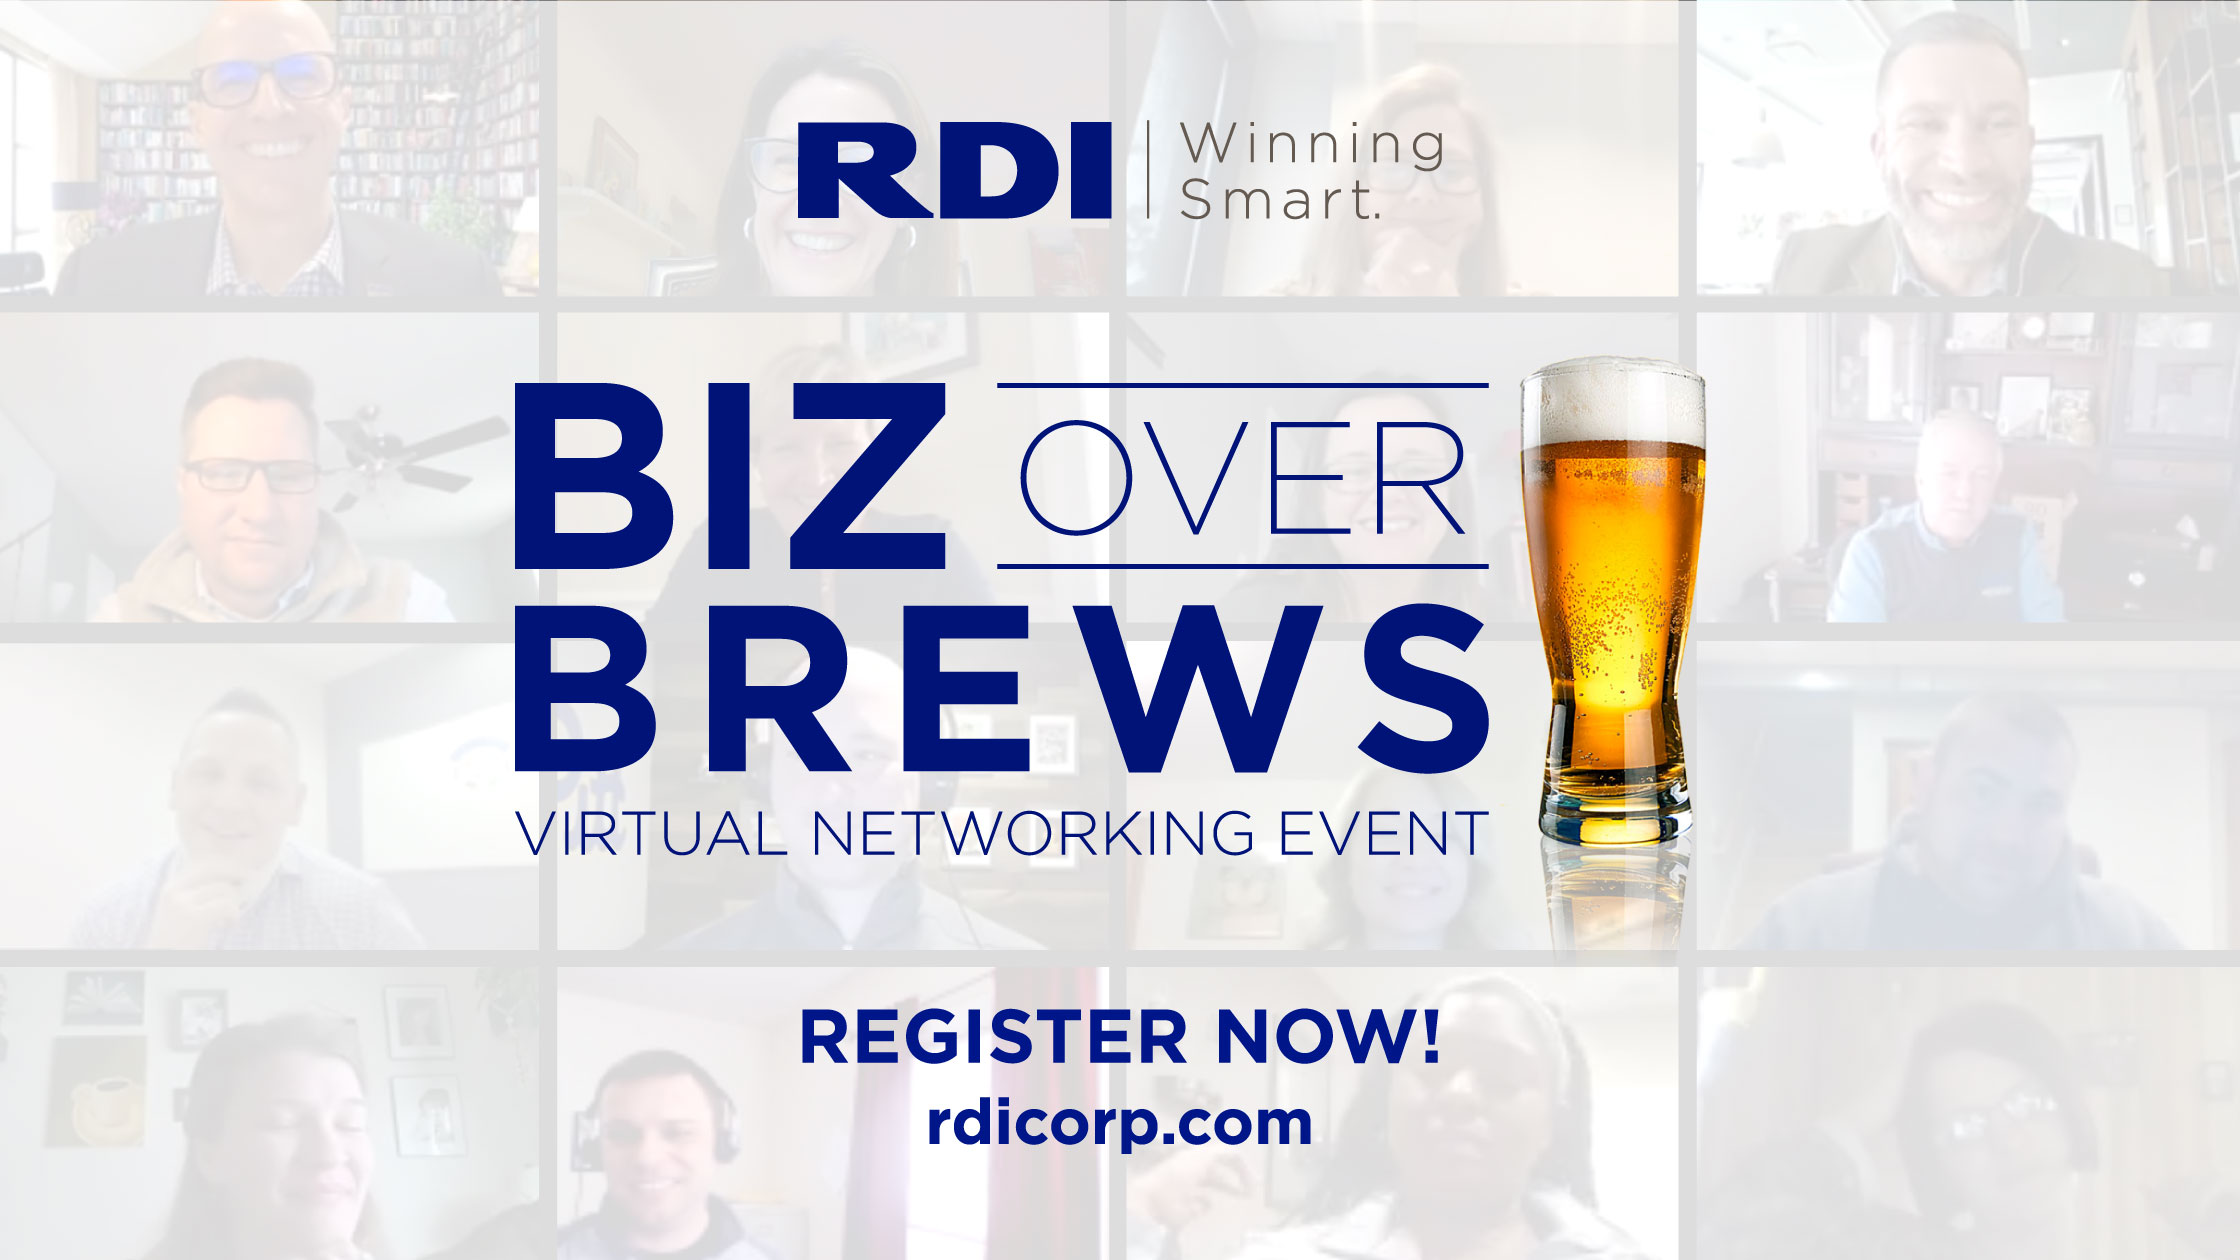 Biz Over Brews Virtual Networking Event - Winning Smart with RDI Corporation